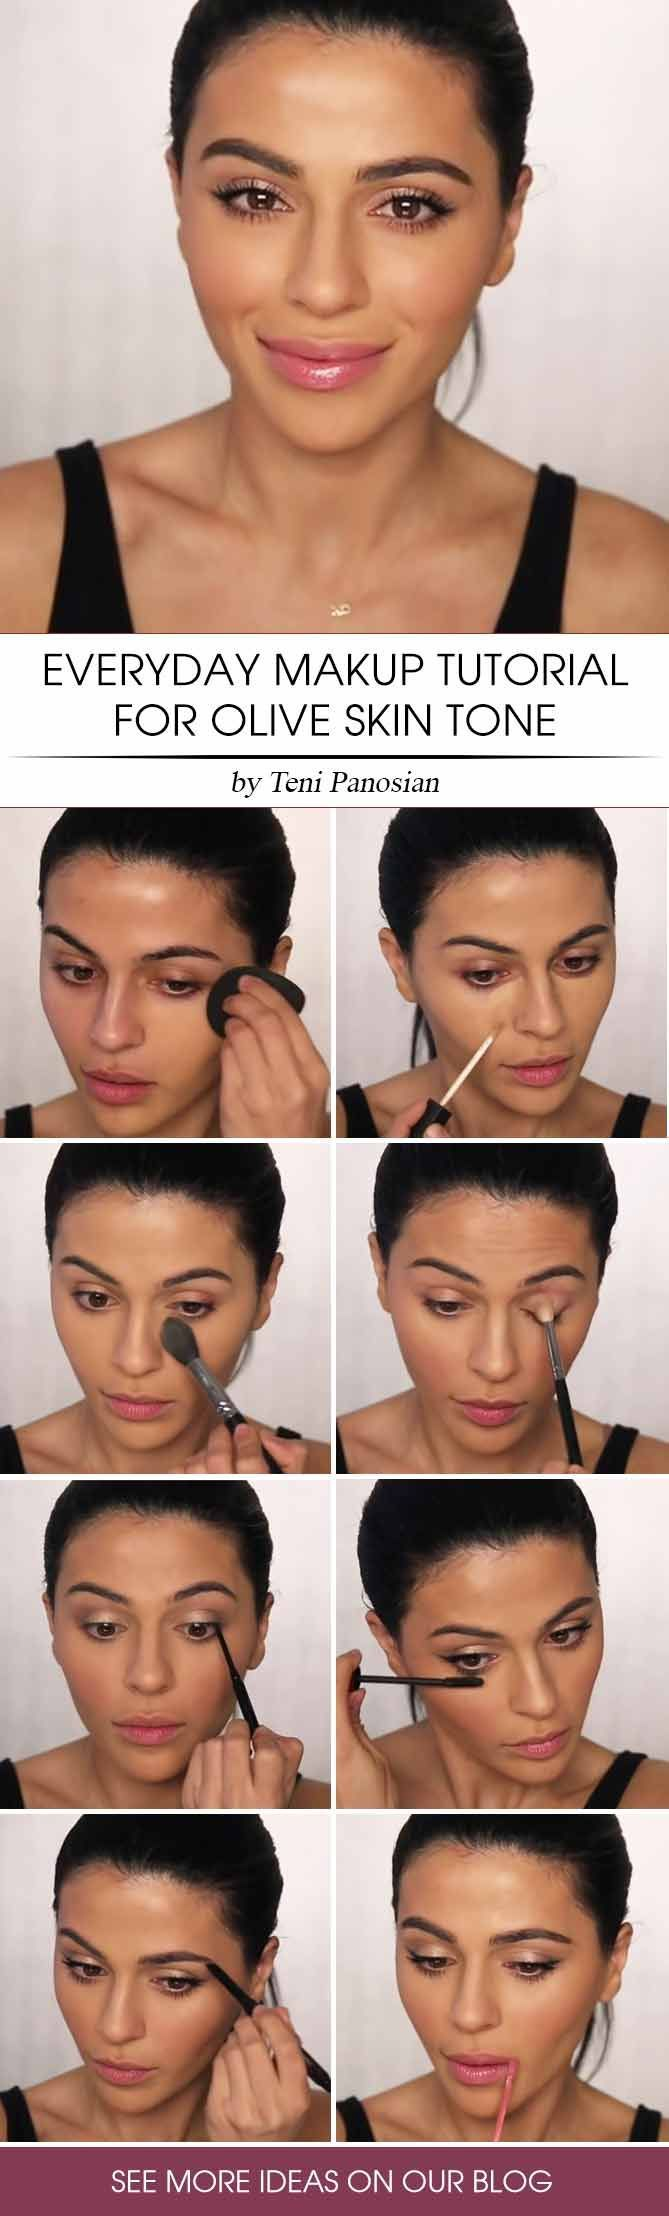 Olive Skin Tone Which Makeup Shades To Look For Glaminati Com Skin Tone Makeup Olive Skin Tone Olive Skin Makeup